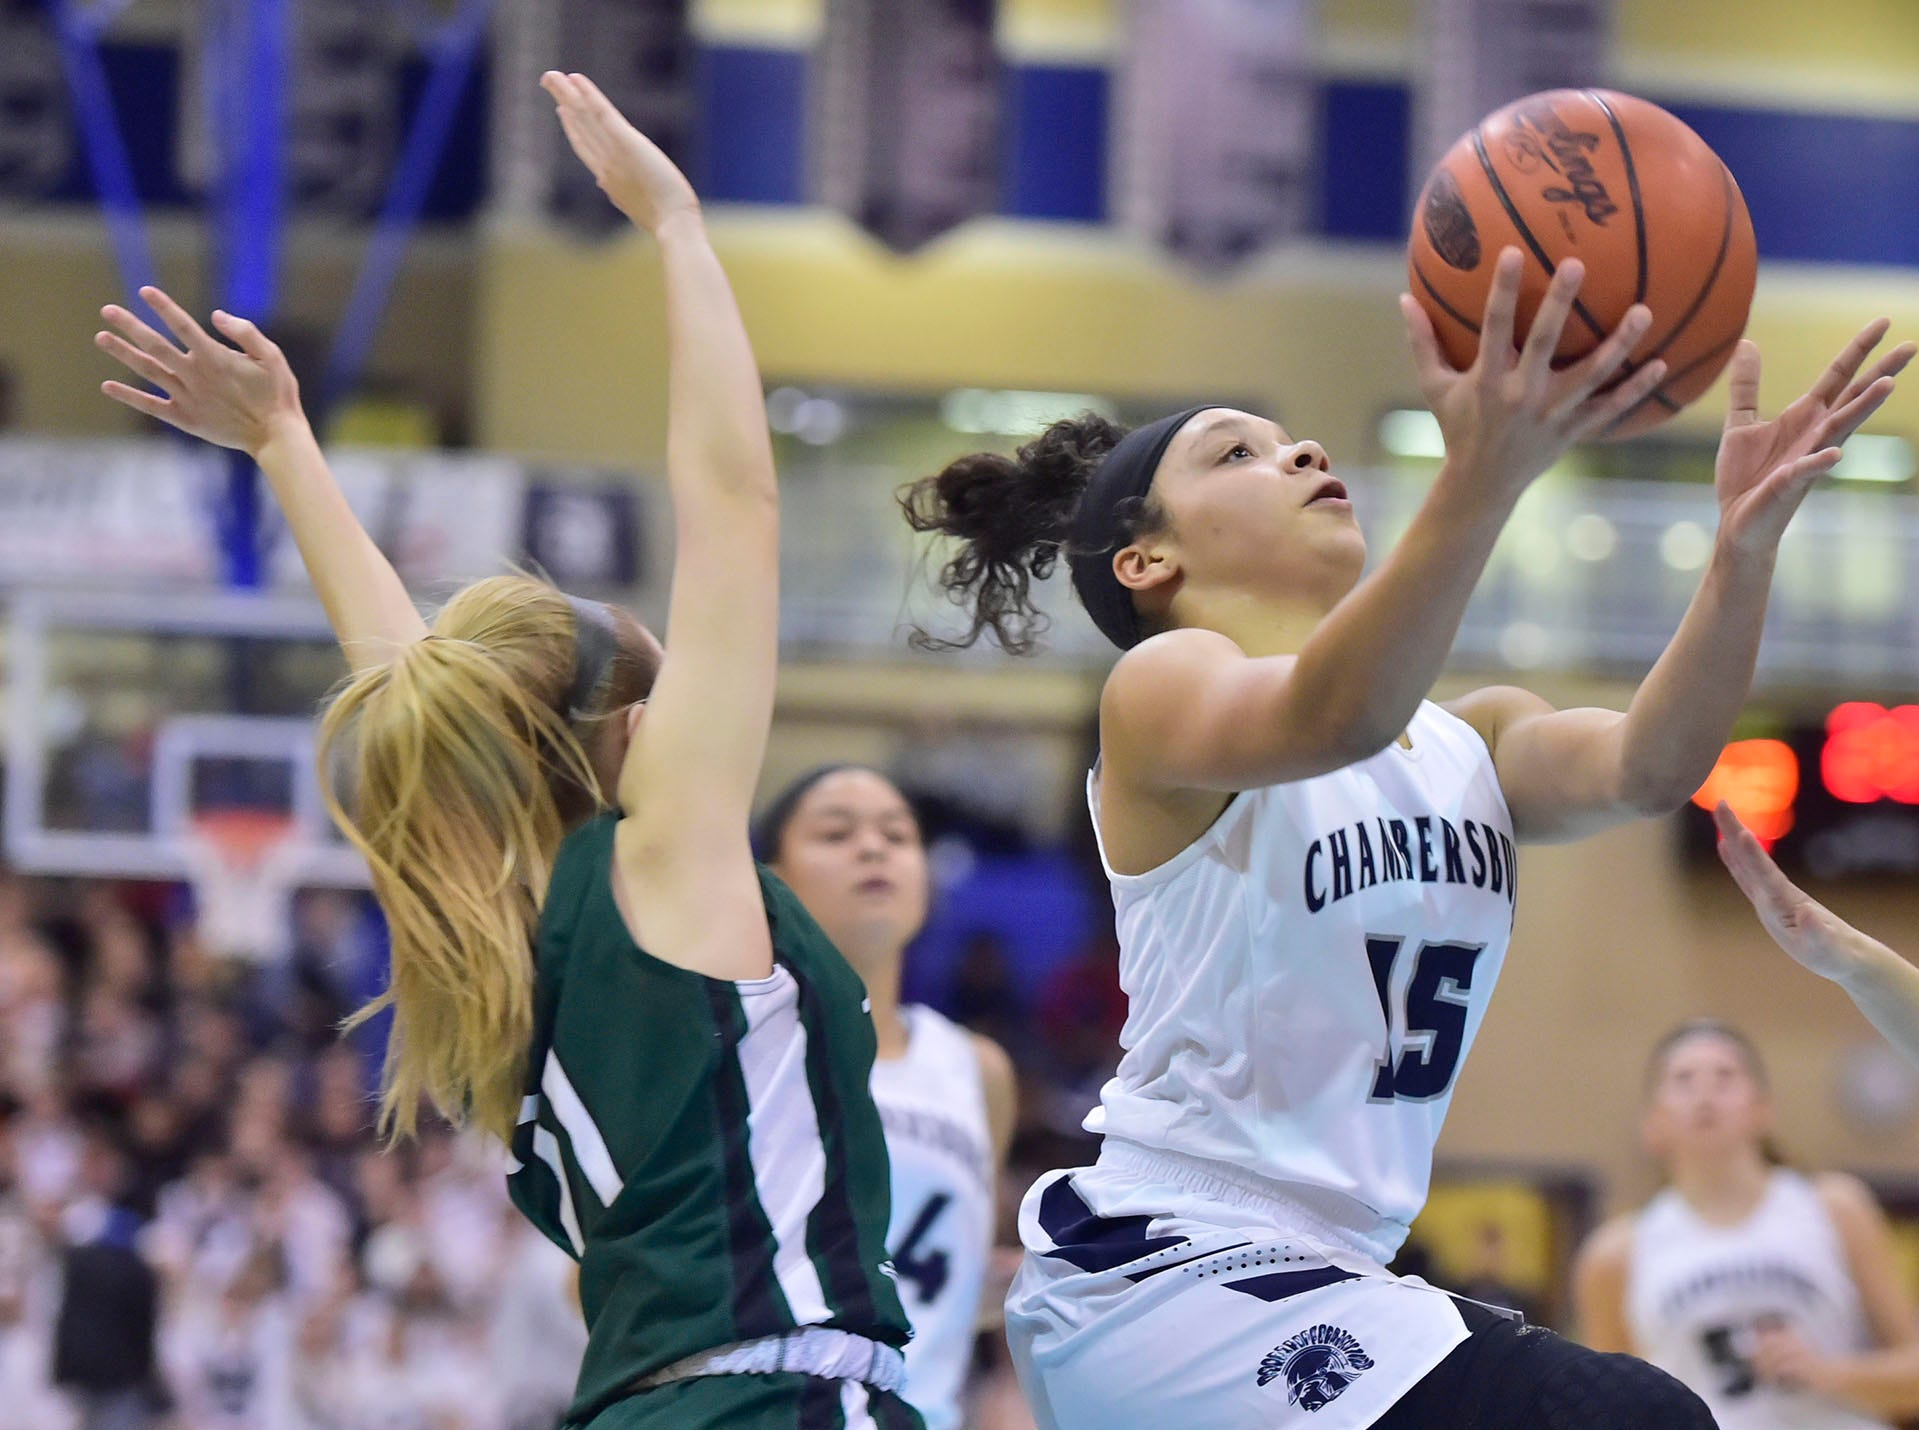 Chambersburg's Bre'ya Clopper (15) drives to the basket to even the score against James Buchanan. Chambersburg played James Buchanan girls during the Franklin County Tip-Off Tournament, Friday, Dec. 7, 2018.